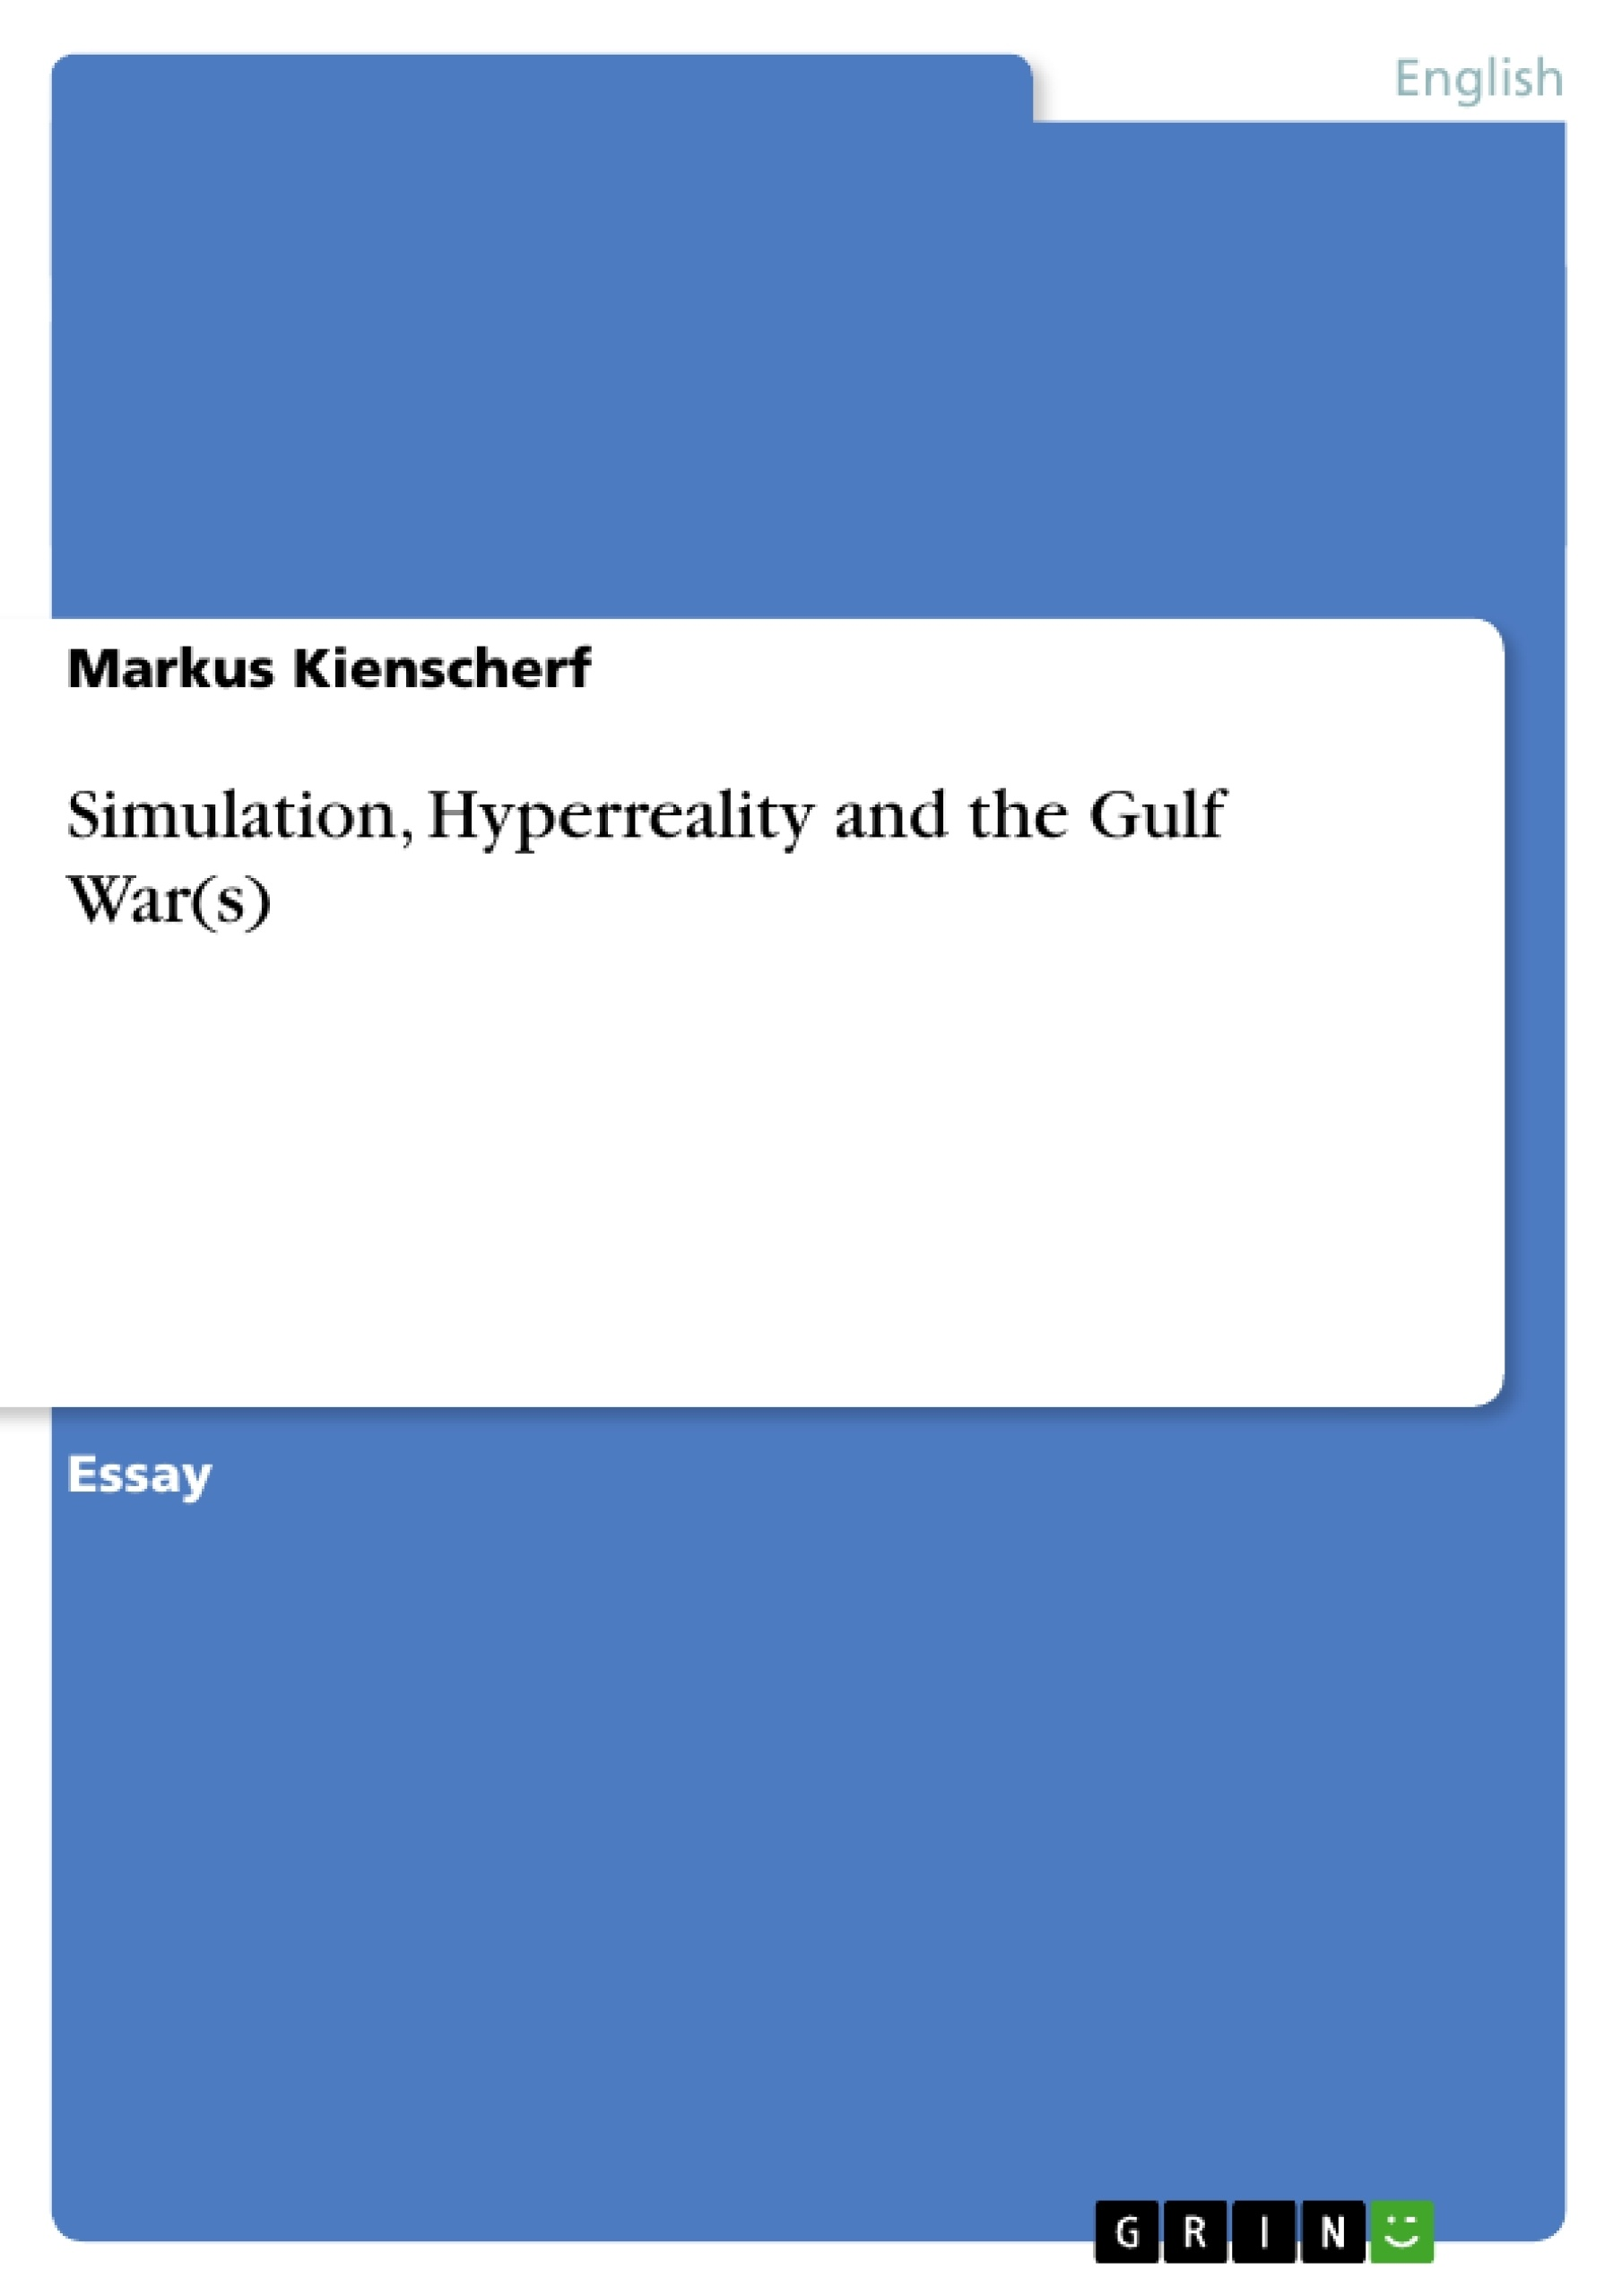 Title: Simulation, Hyperreality and the Gulf War(s)